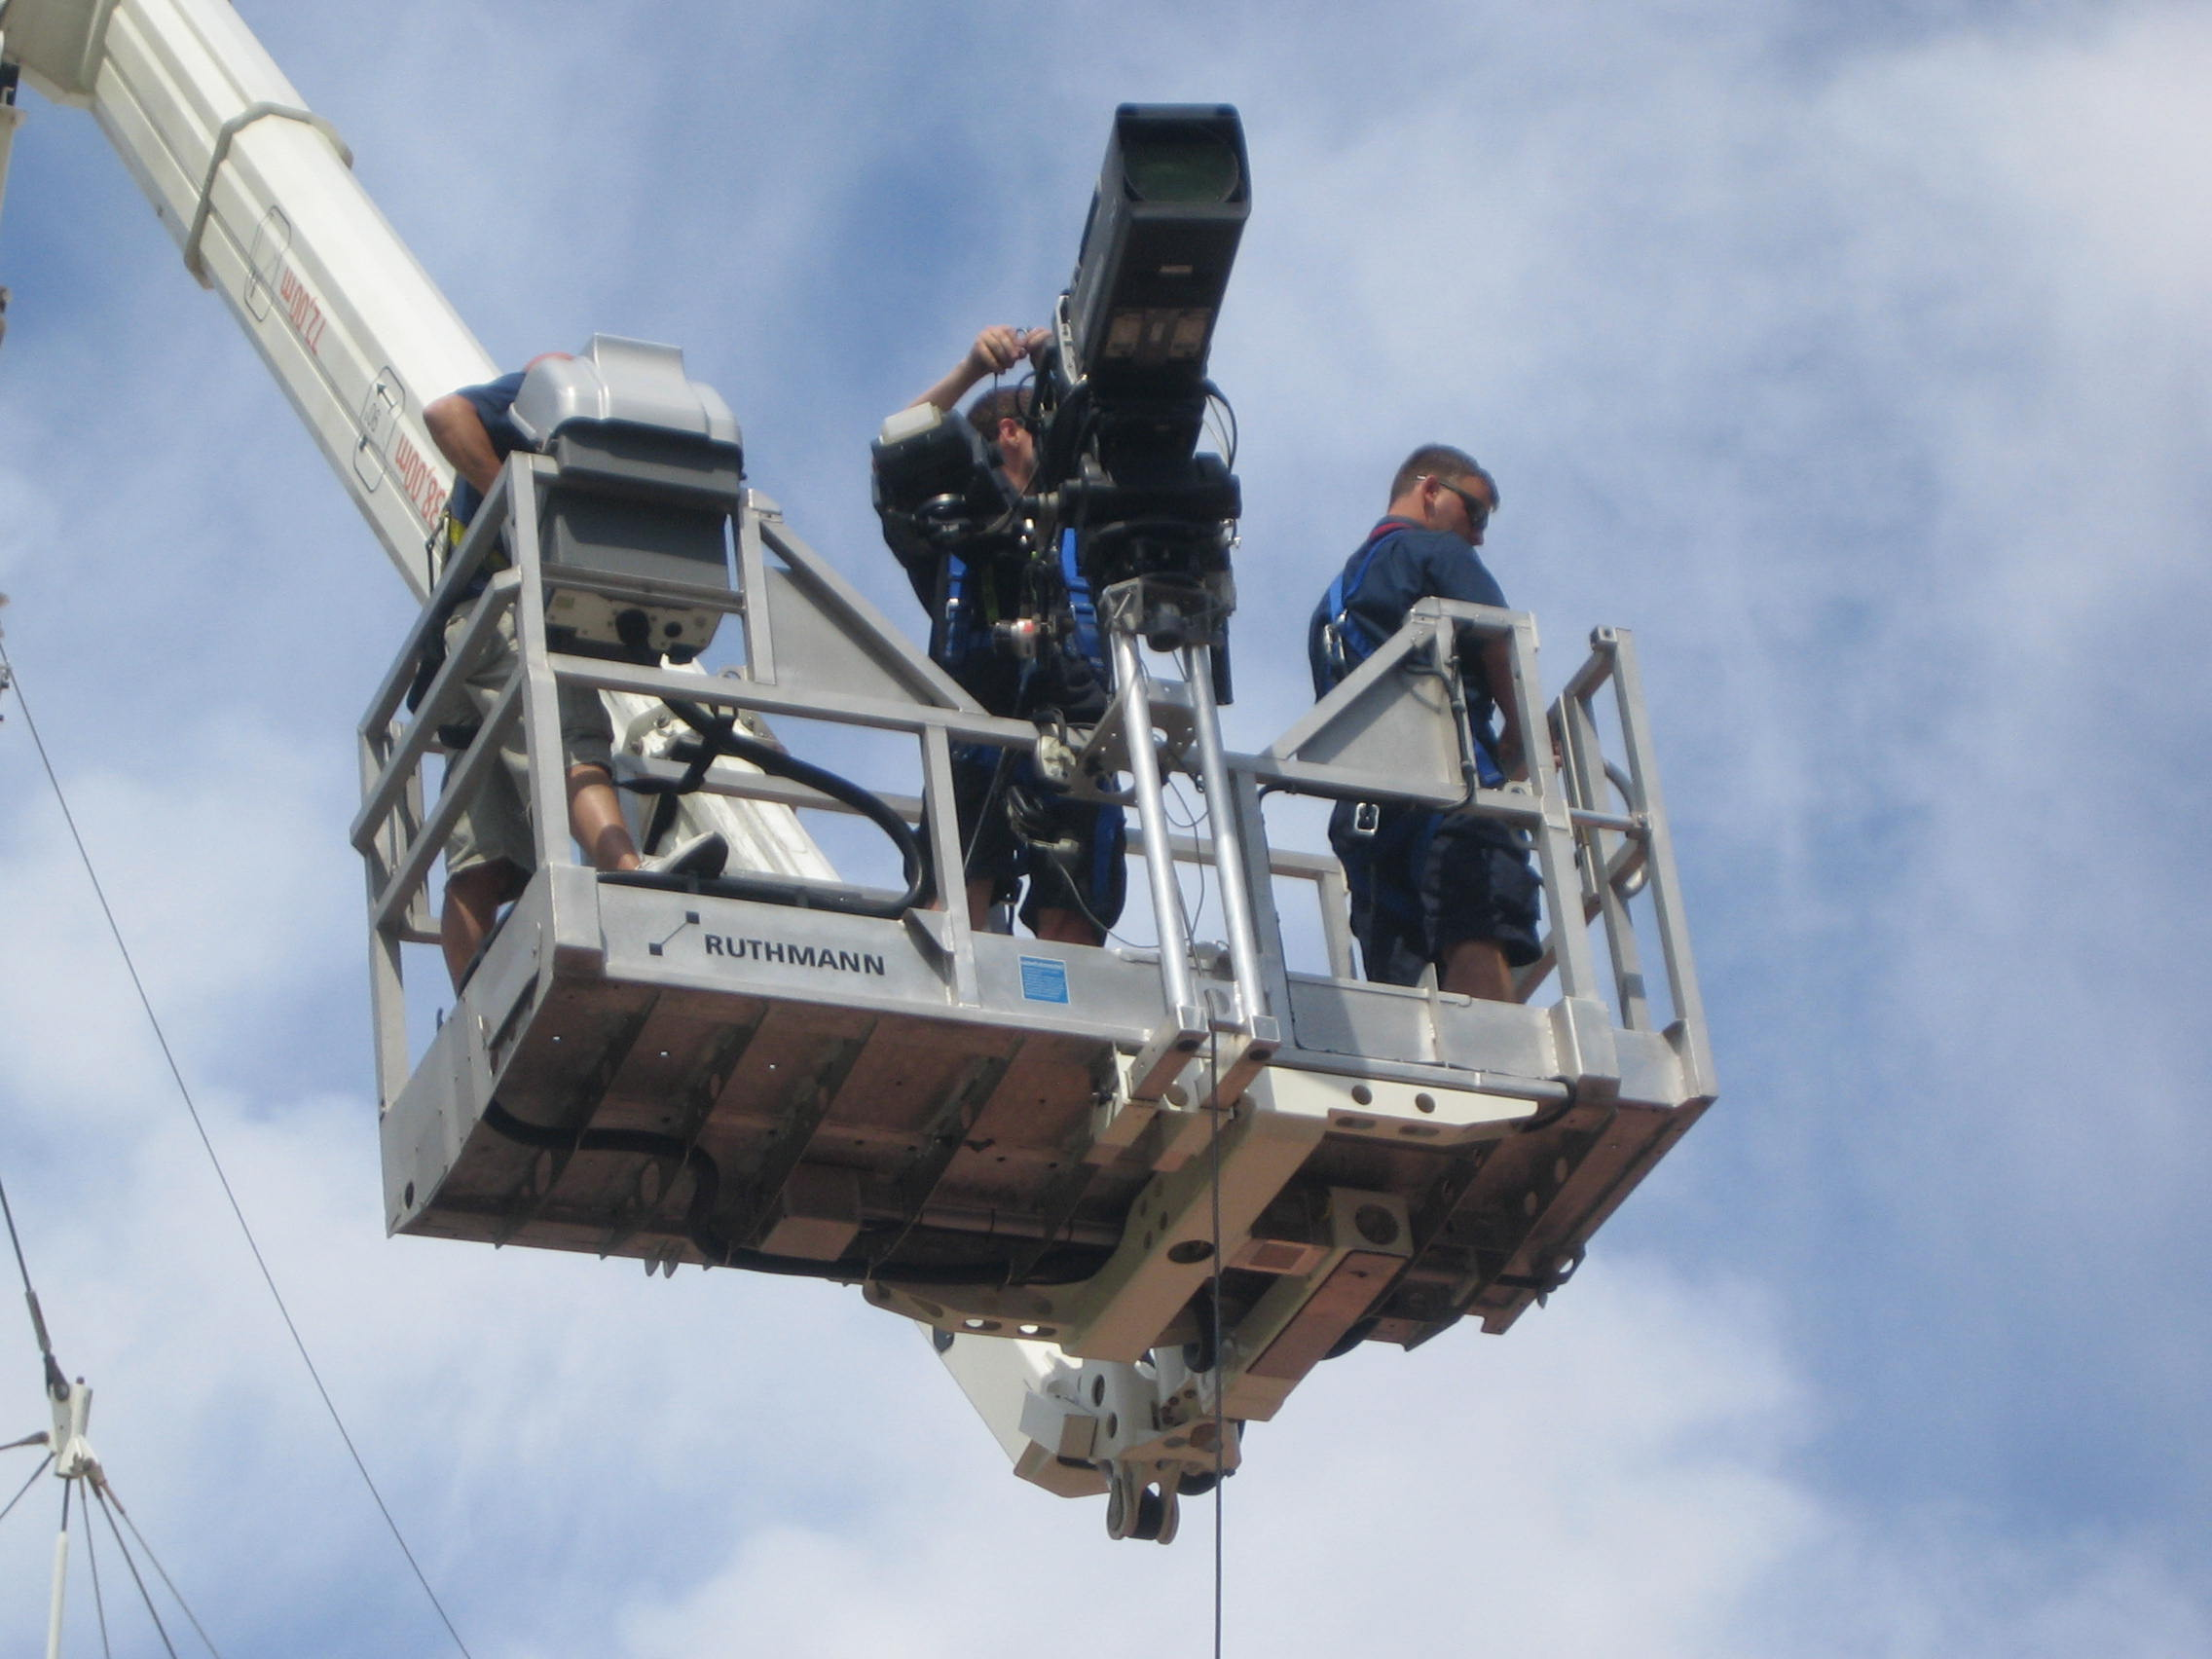 Aerial film work with camera mounted to a MEWP basket